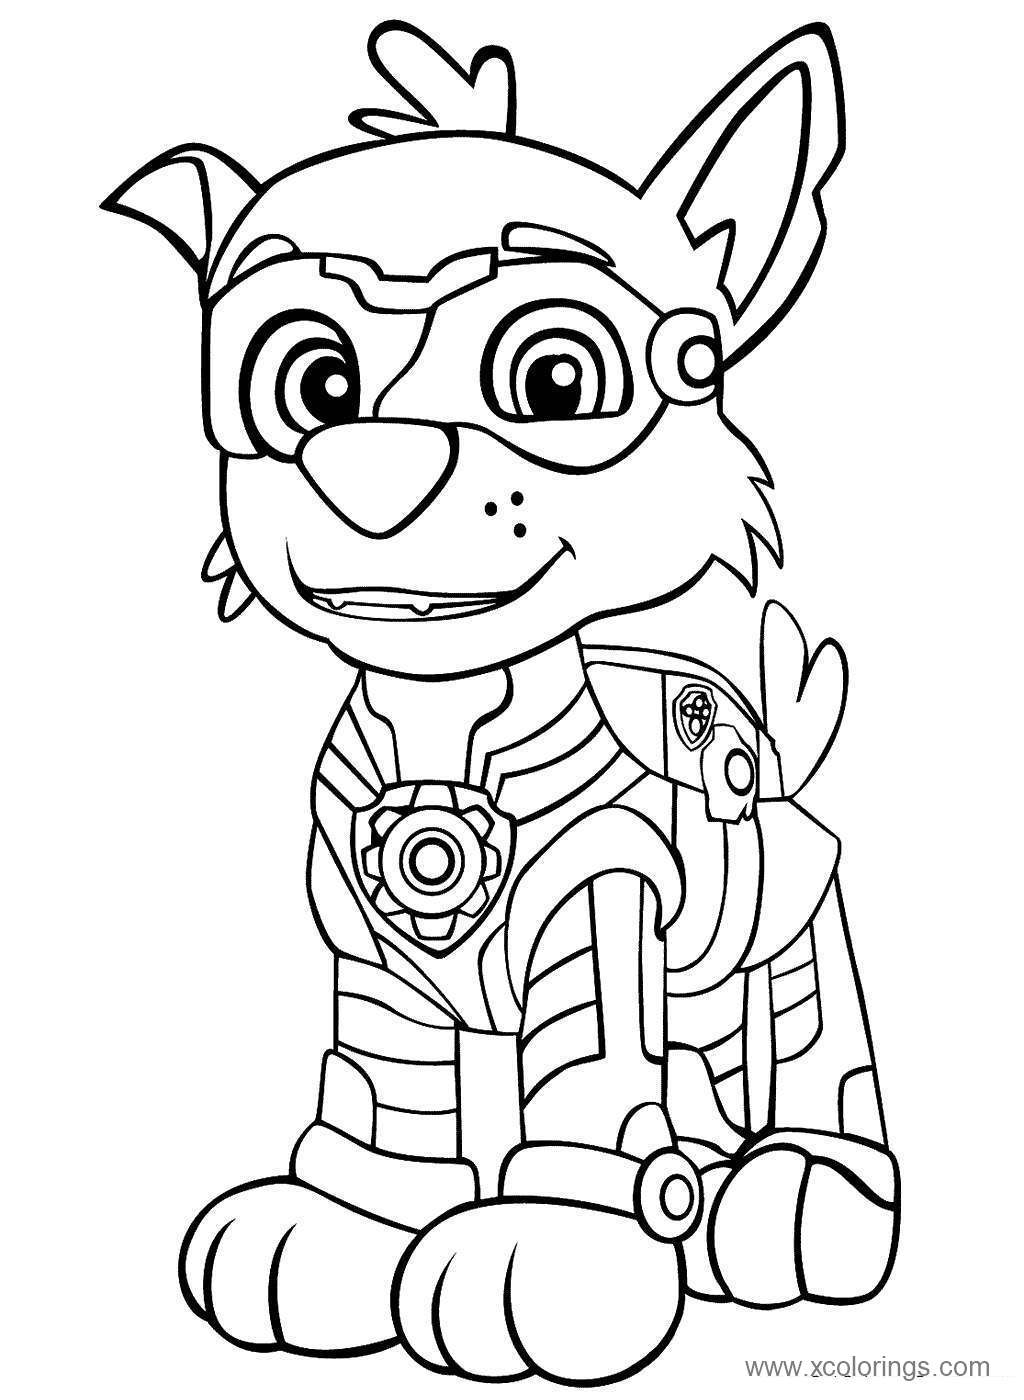 Paw Patrol Mighty Pups Coloring Pages Archives Xcolorings